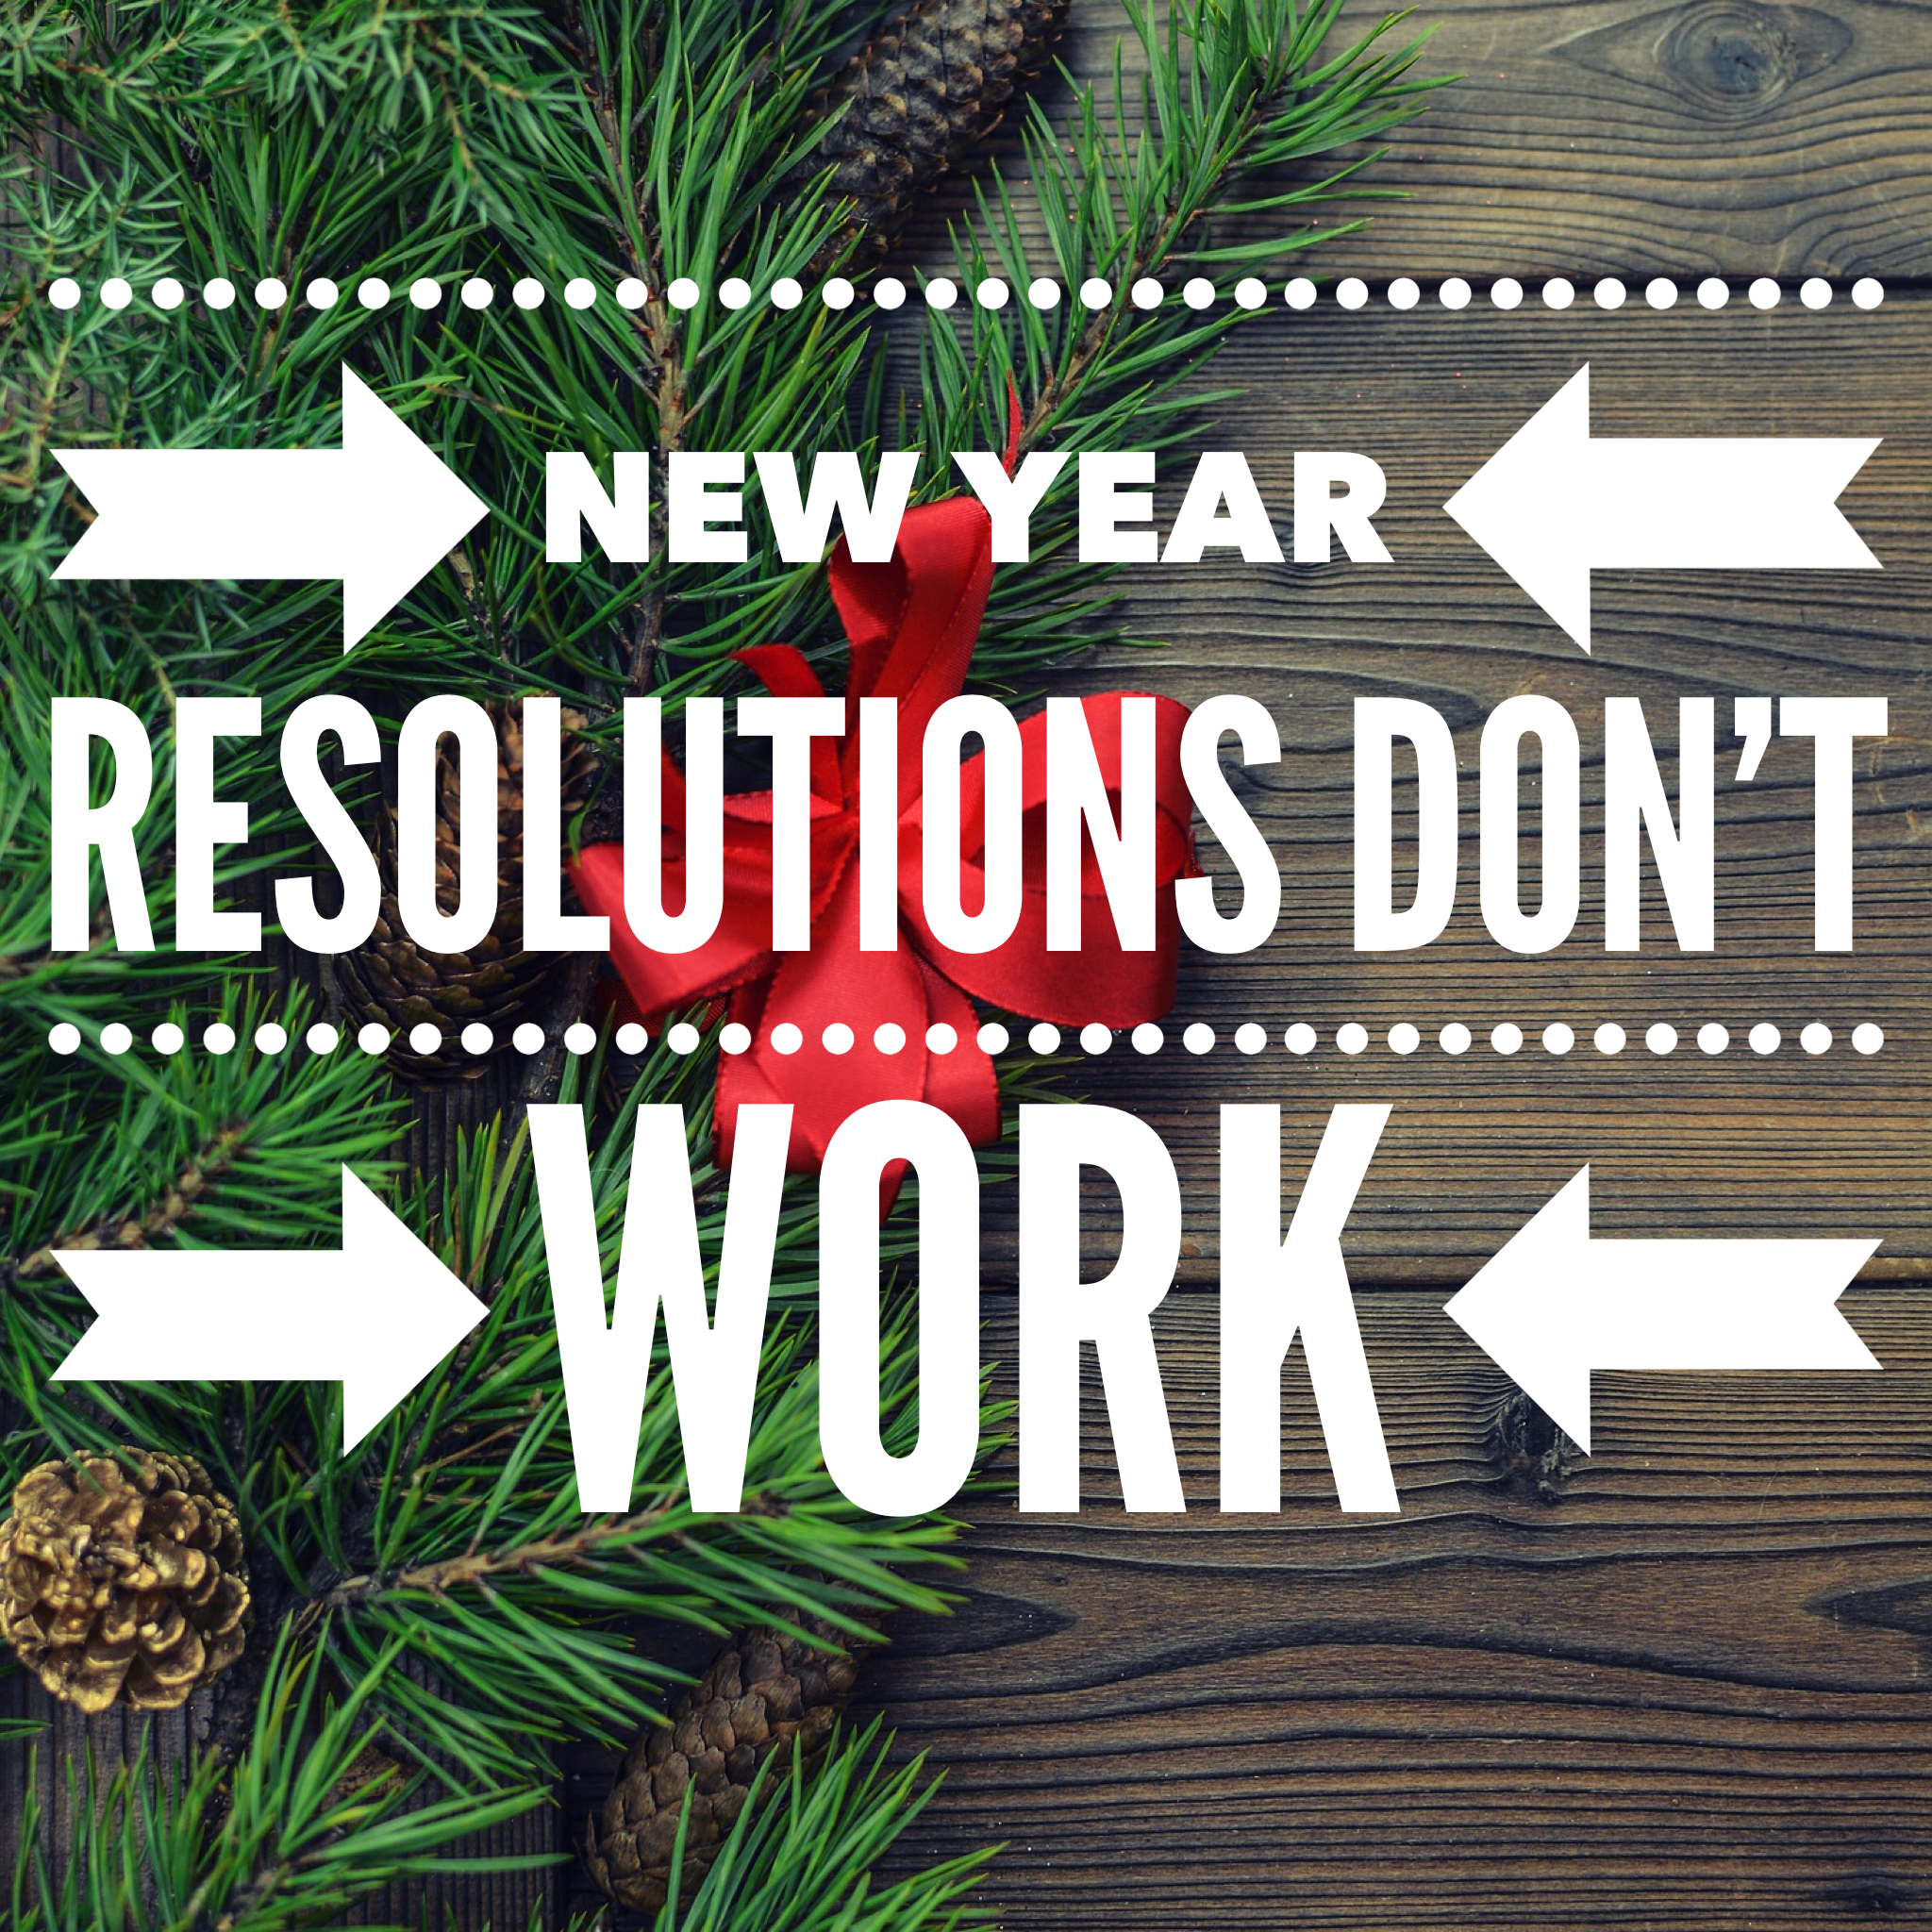 Ditch New Year Resolutions!